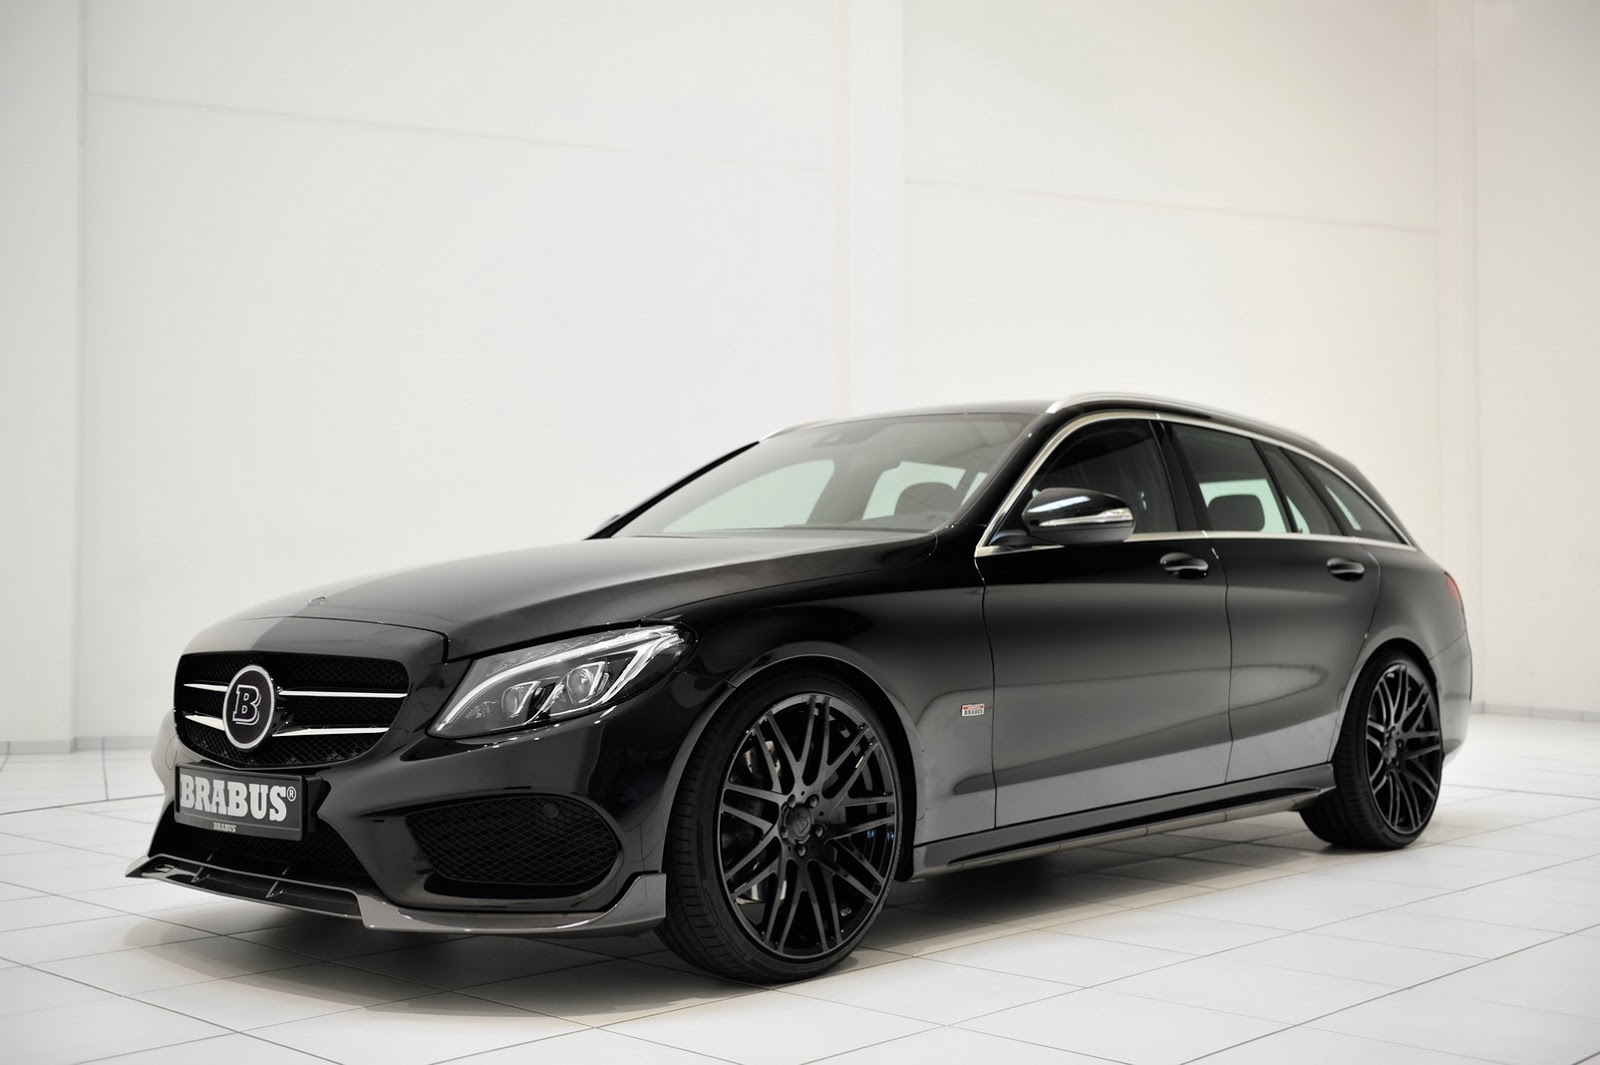 brabus turns the wick on new mercedes benz c class wagon carscoops. Black Bedroom Furniture Sets. Home Design Ideas